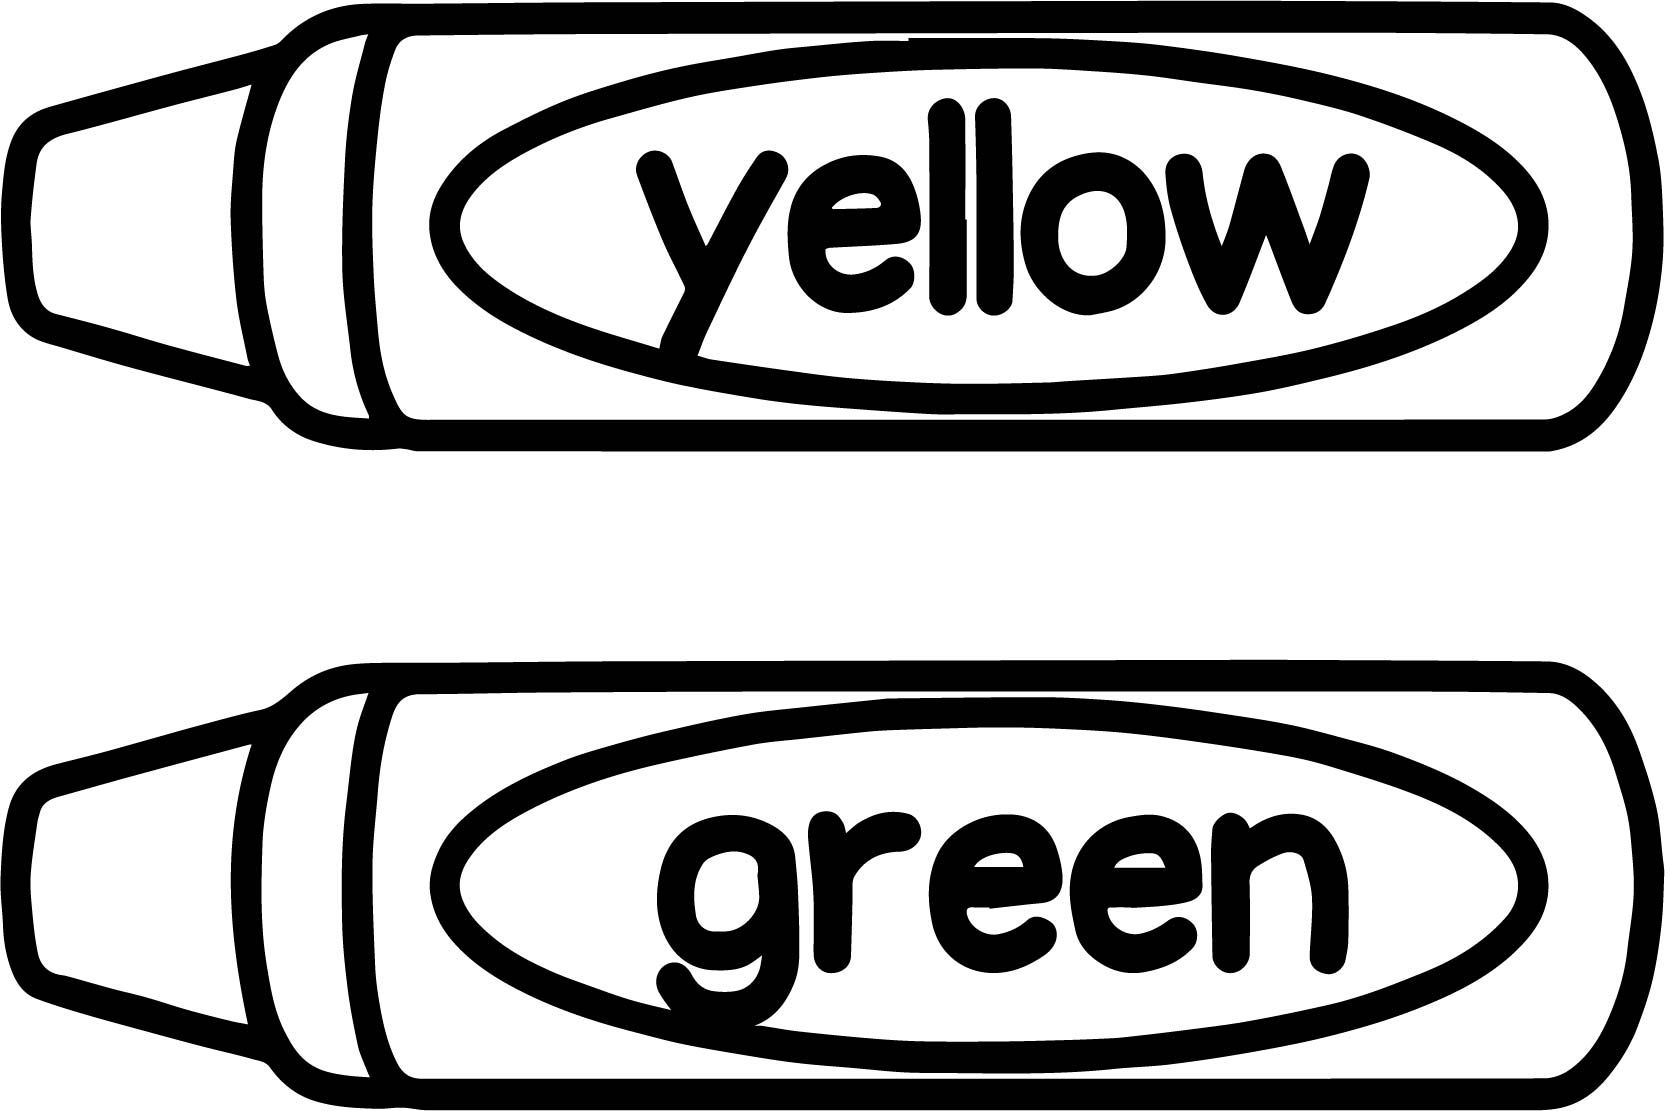 Cool Crayon Yellow Green Coloring Page Coloring Pages Red Crayon Coloring Pages For Boys